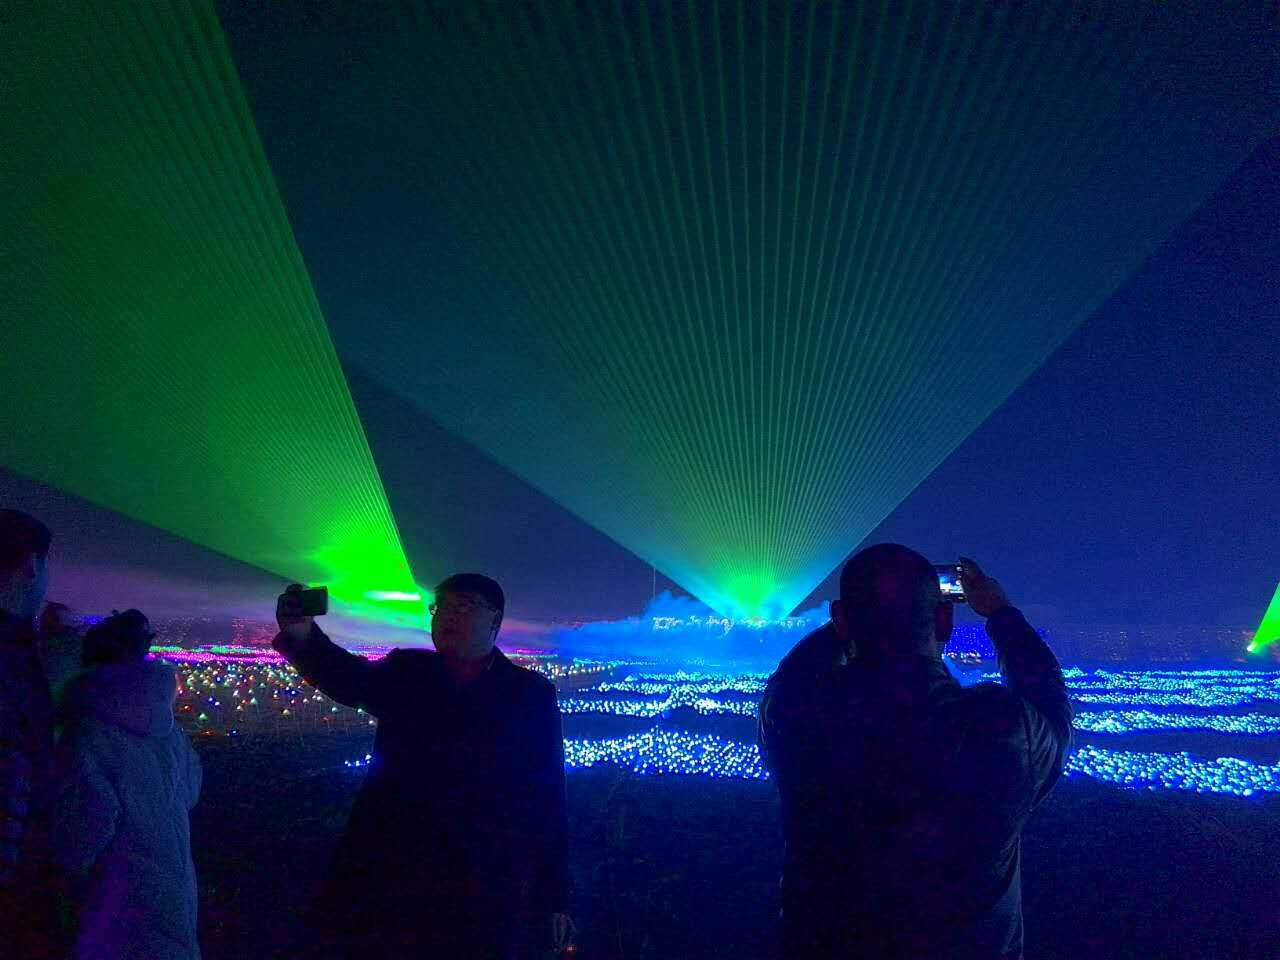 Is the lighting festival all over the country really making money? Wansheng photoelectric unveil for